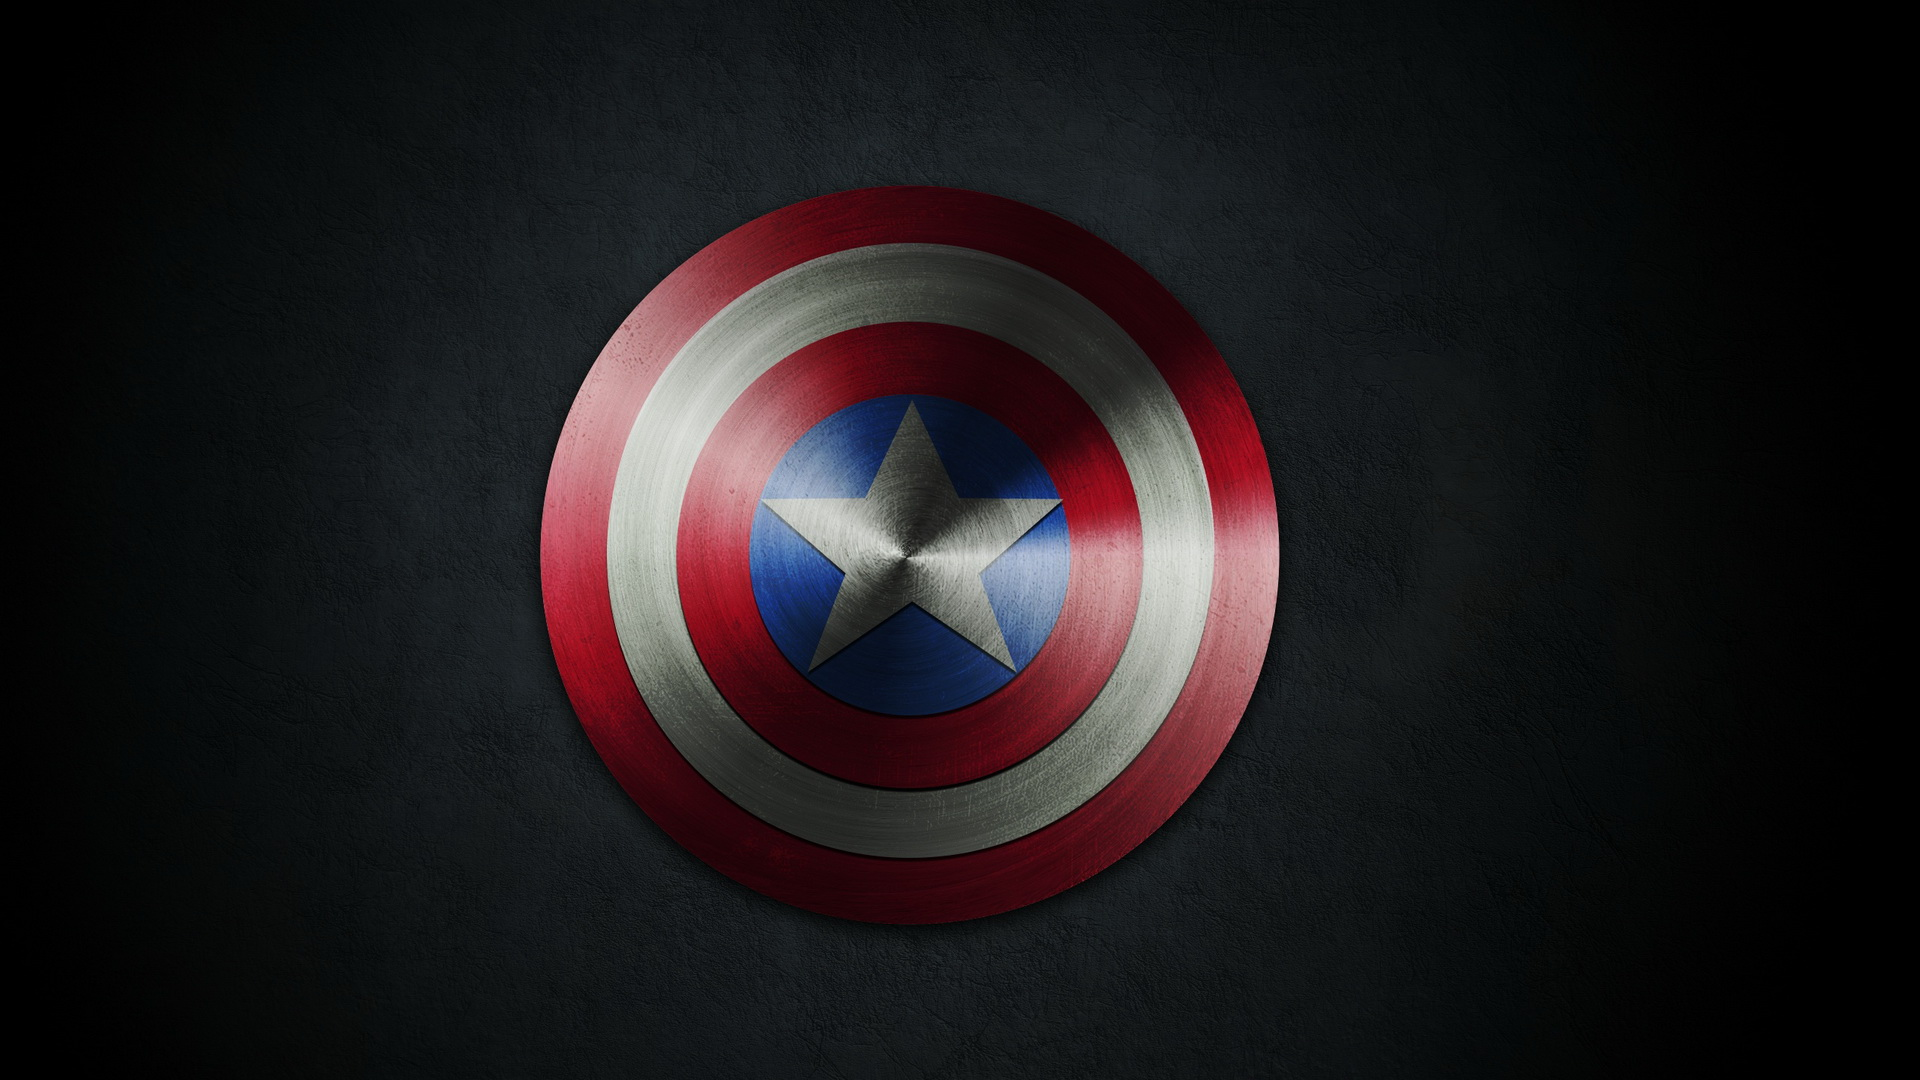 Hd wallpaper of captain america - Hd Wallpaper Of Captain America Captain America Hd Download